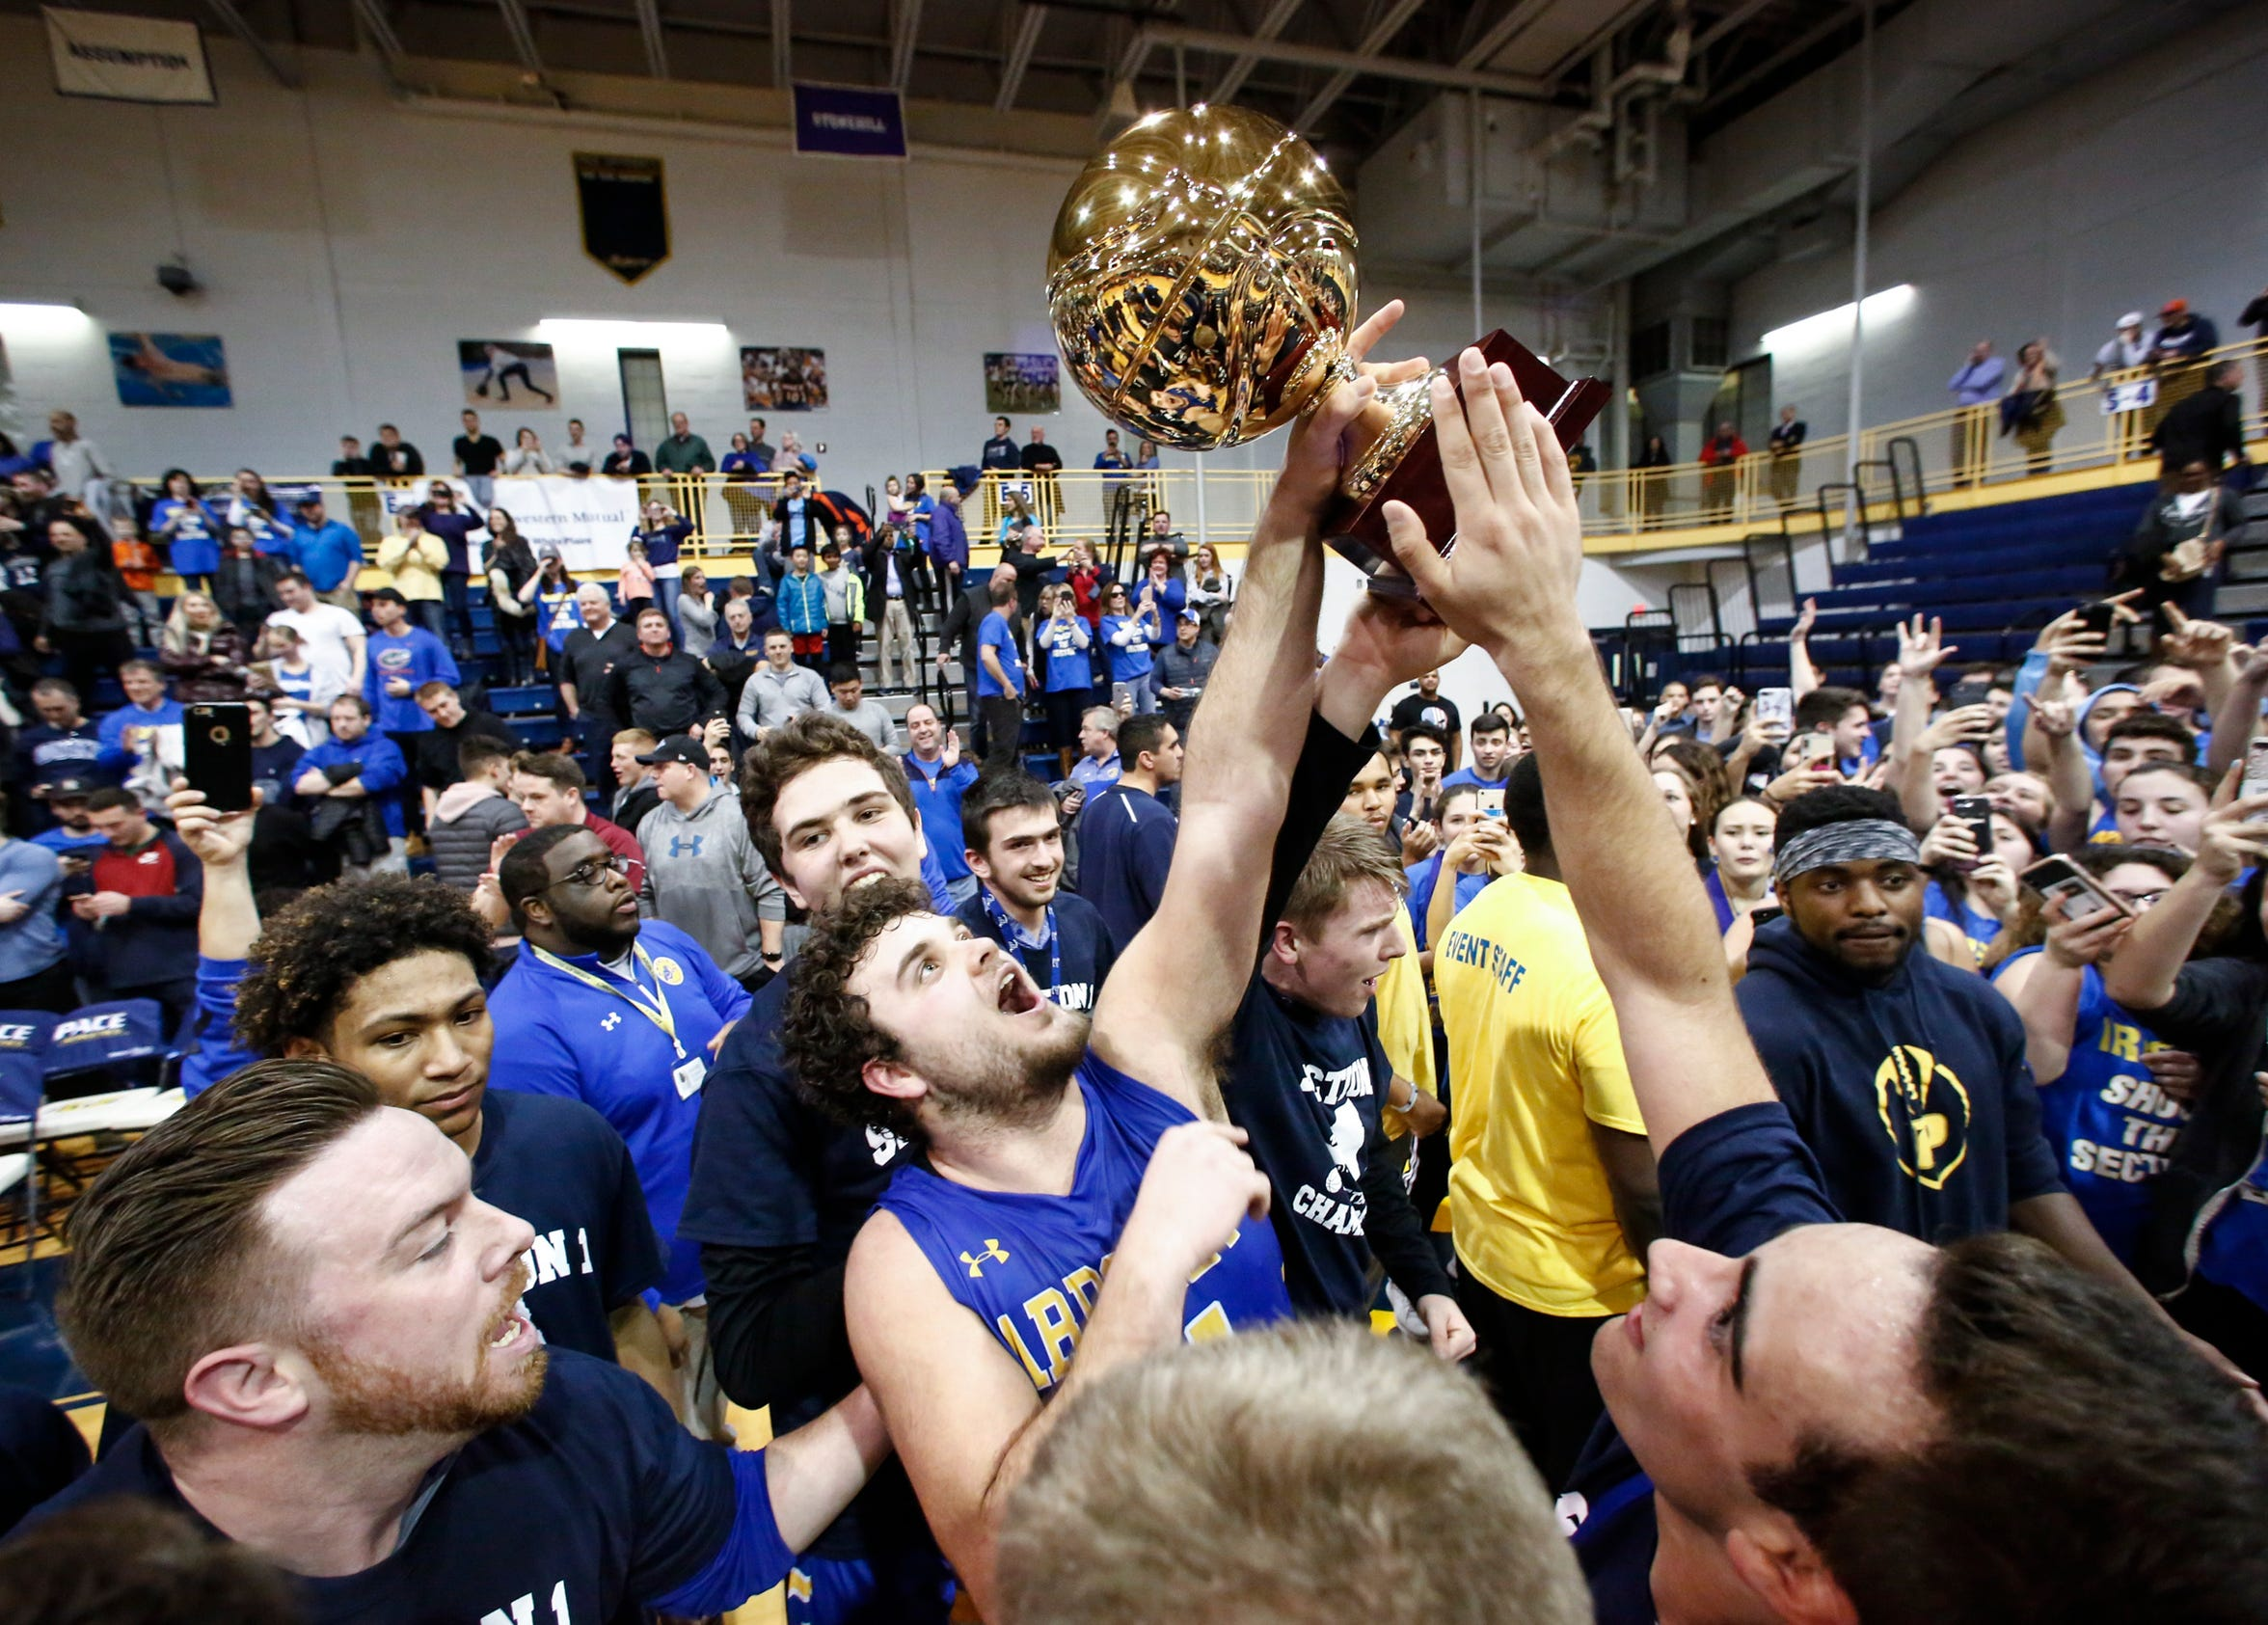 Ardsley's Julian McGarvey (21) center hoists the gold ball after sinking a more than 70-foot shot to defeat Tappan Zee 52-51 in the final seconds of the the boys Class A championship basketball game at Pace University in Pleasantville on Saturday, March 3, 2018.